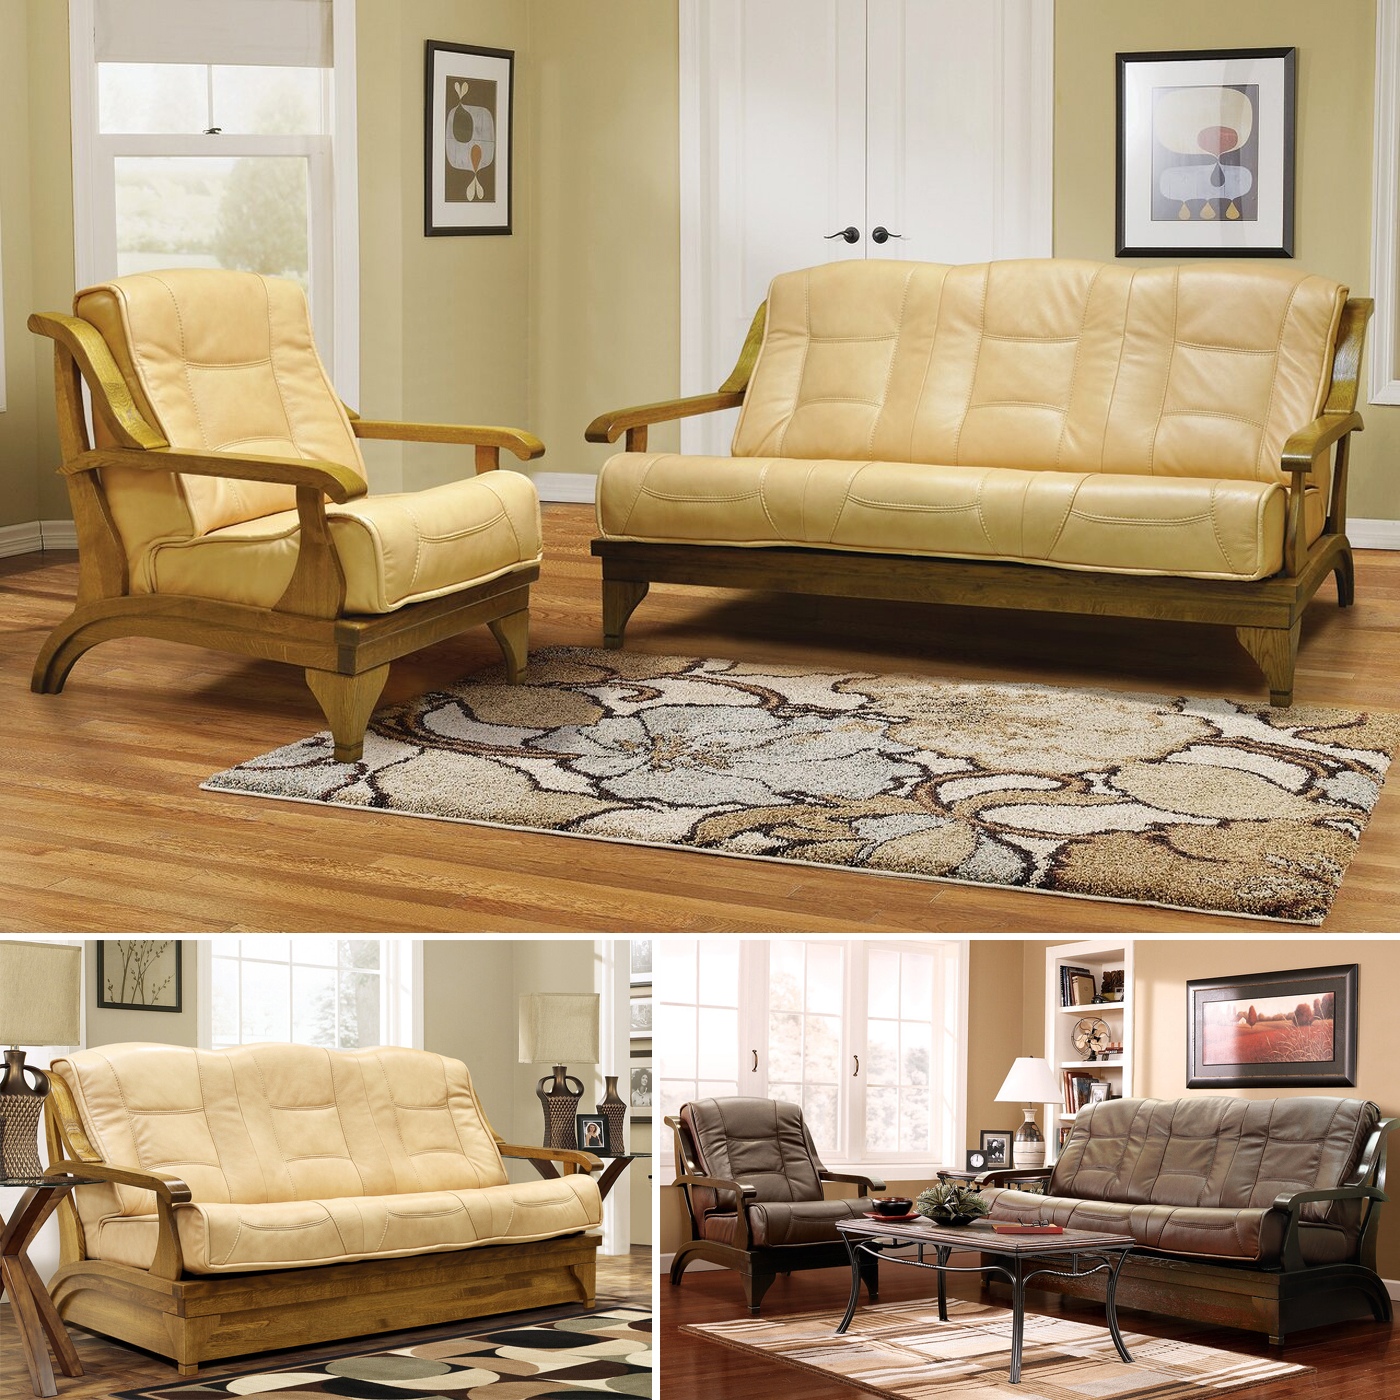 Couch Sessel Partner Couchgarnitur, Leder - Couch Mit Schlaffunktion, 2 Sessel - Beige / Braun